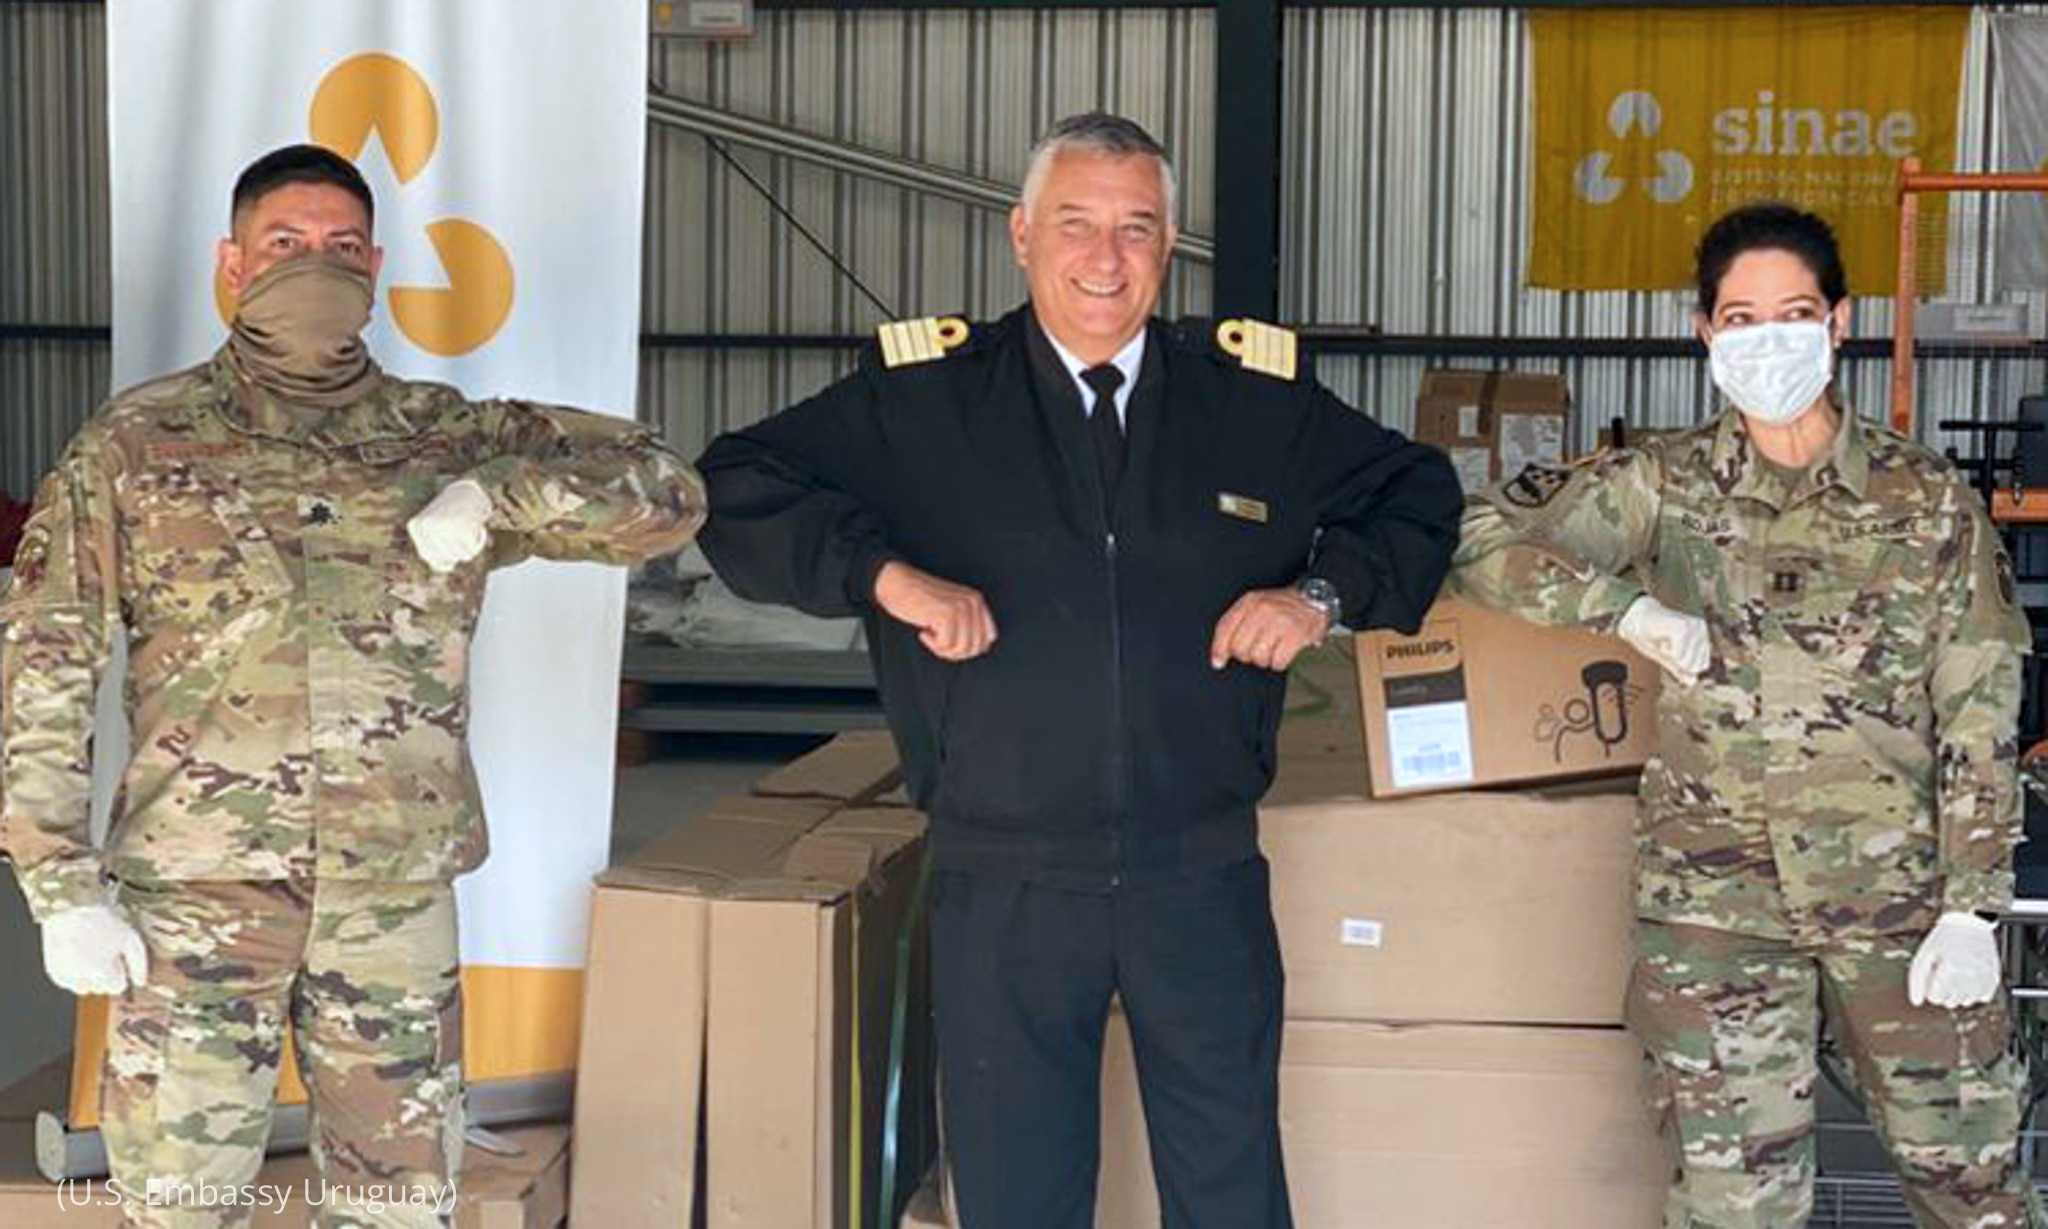 Two masked and gloved soldiers touching elbows with officer in front of boxes of equipment (U.S. Embassy Uruguay)